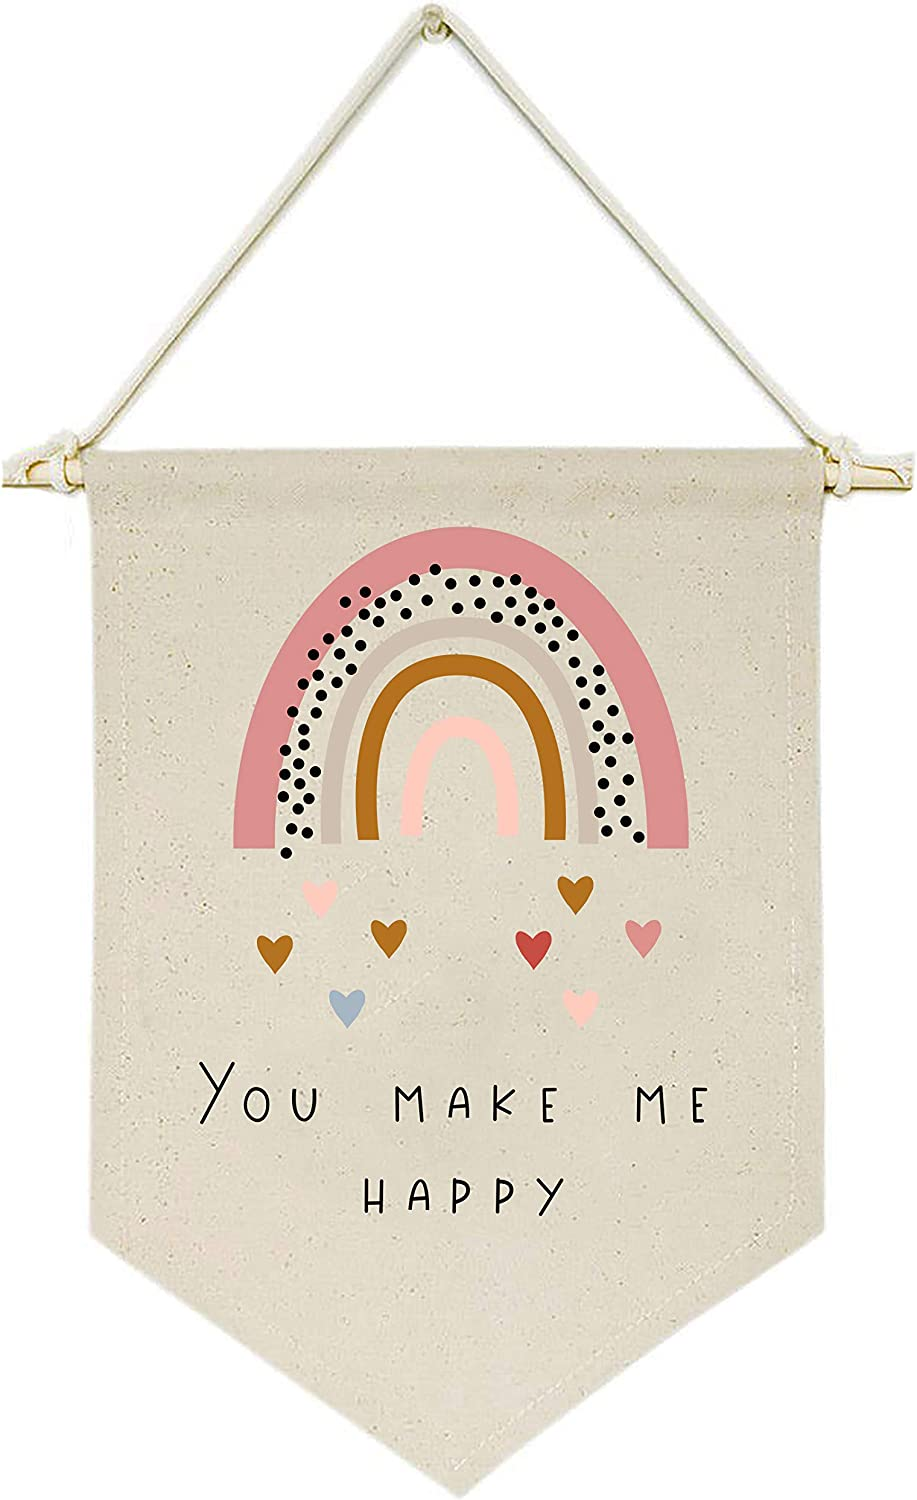 You Make Me Happy Rainbow Heart Luxury Selling goods Hanging Banner Wall Flag -Canvas